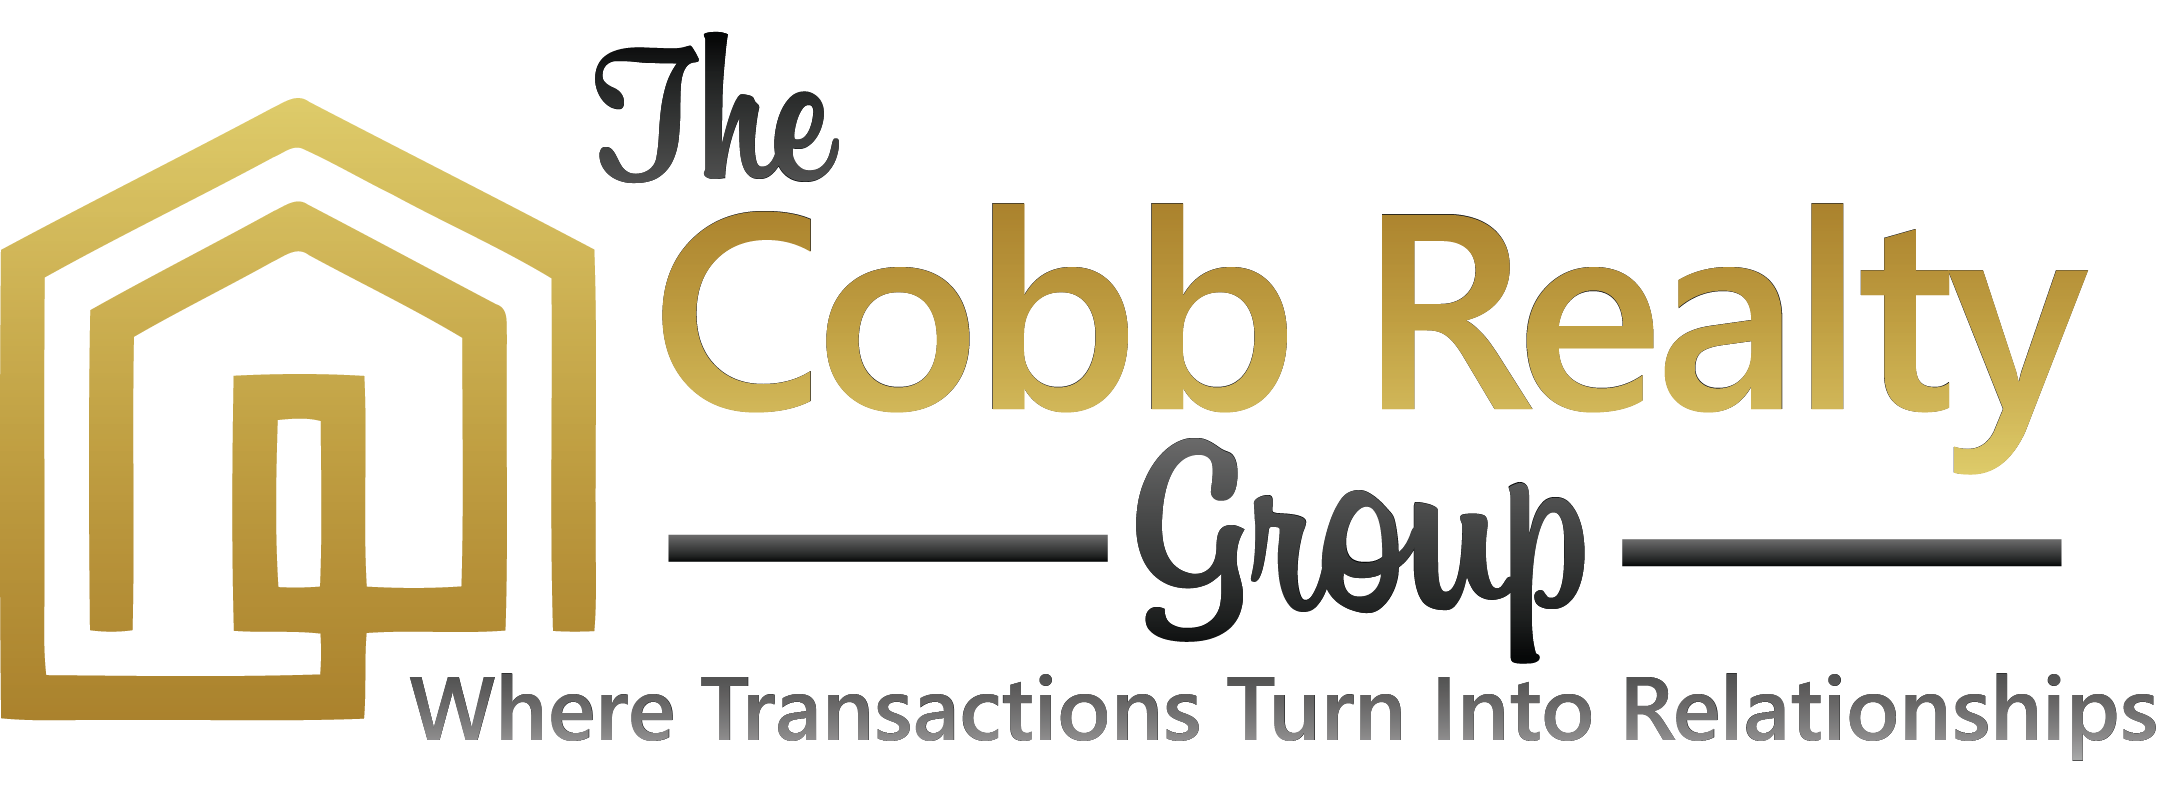 The Cobb Realty Group